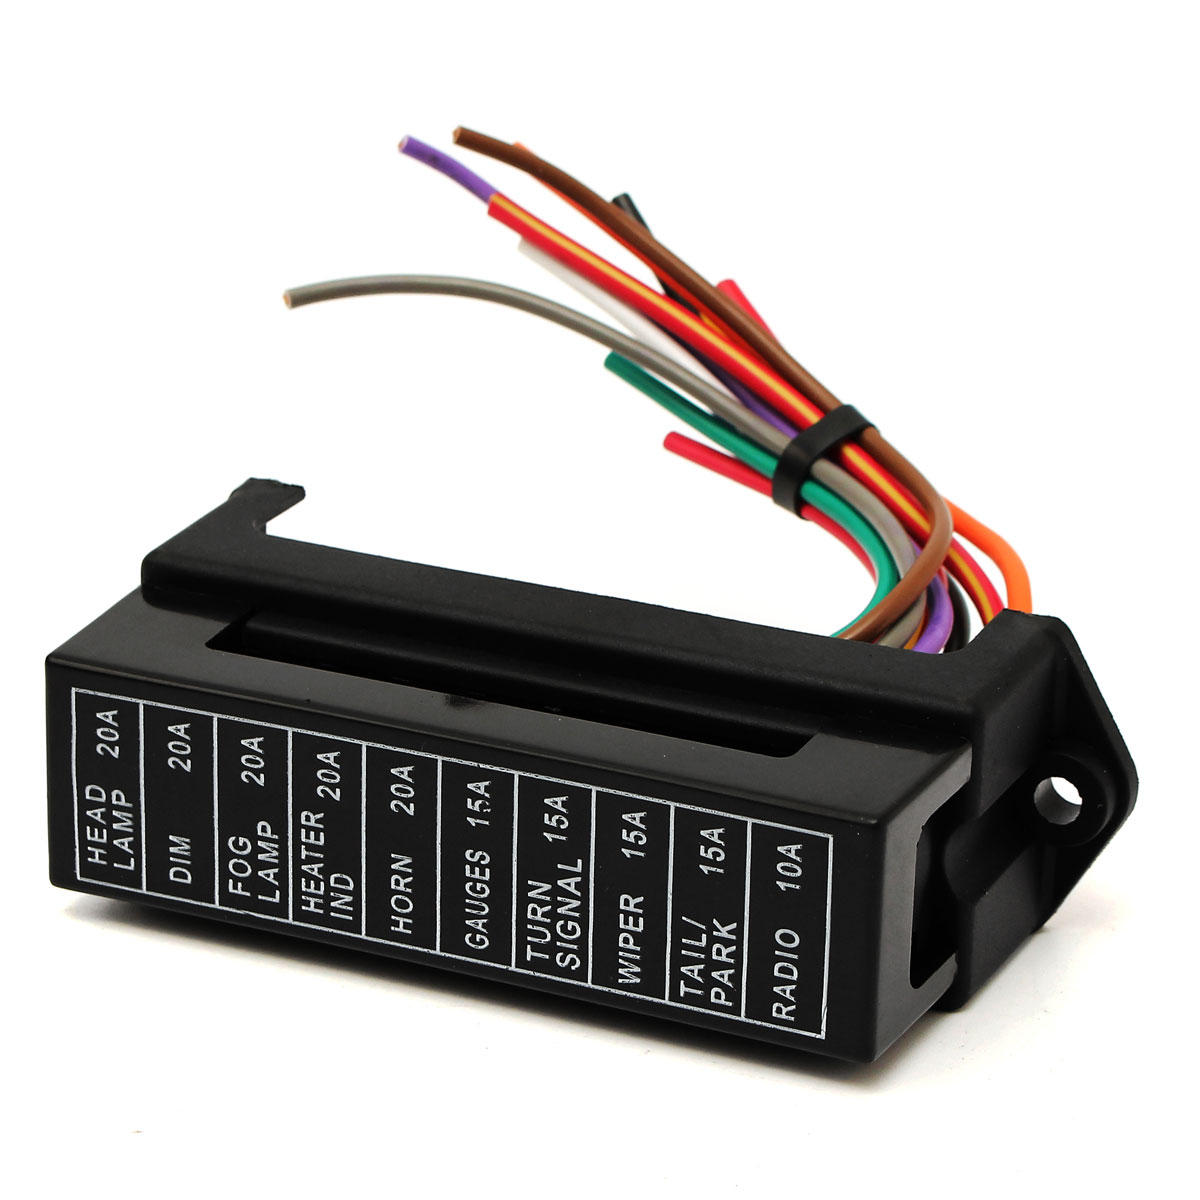 Tremendous 32V 12 Way Circuit Car Boat Automotive Blade Fuse Box Block Holder Wiring 101 Akebretraxxcnl